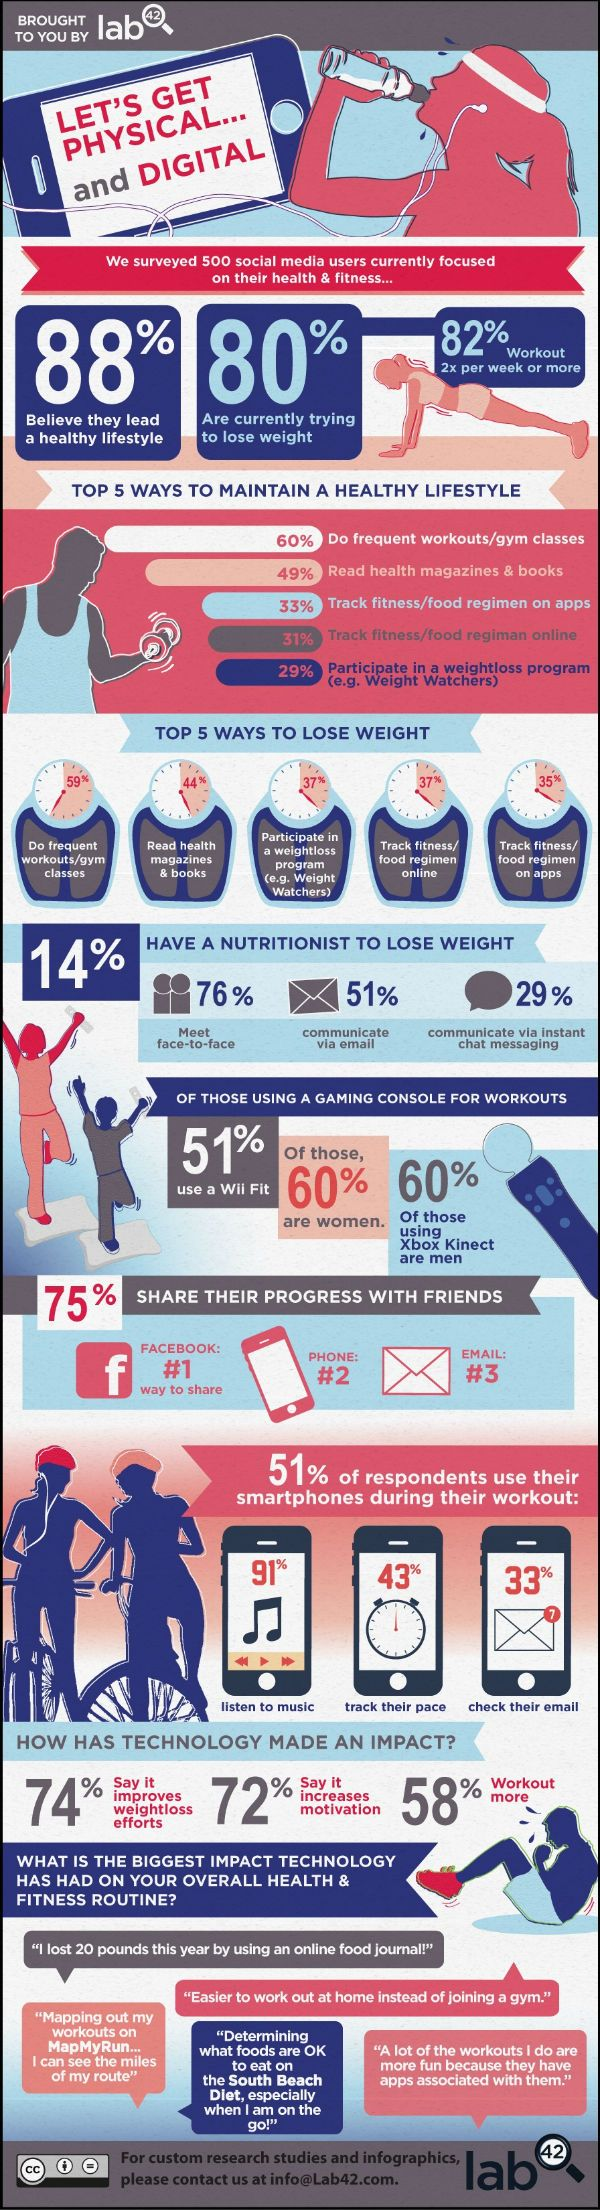 51% use their #smartphones while working out, and 75% of those share their results #DigitalHealth #FitnessTrackers